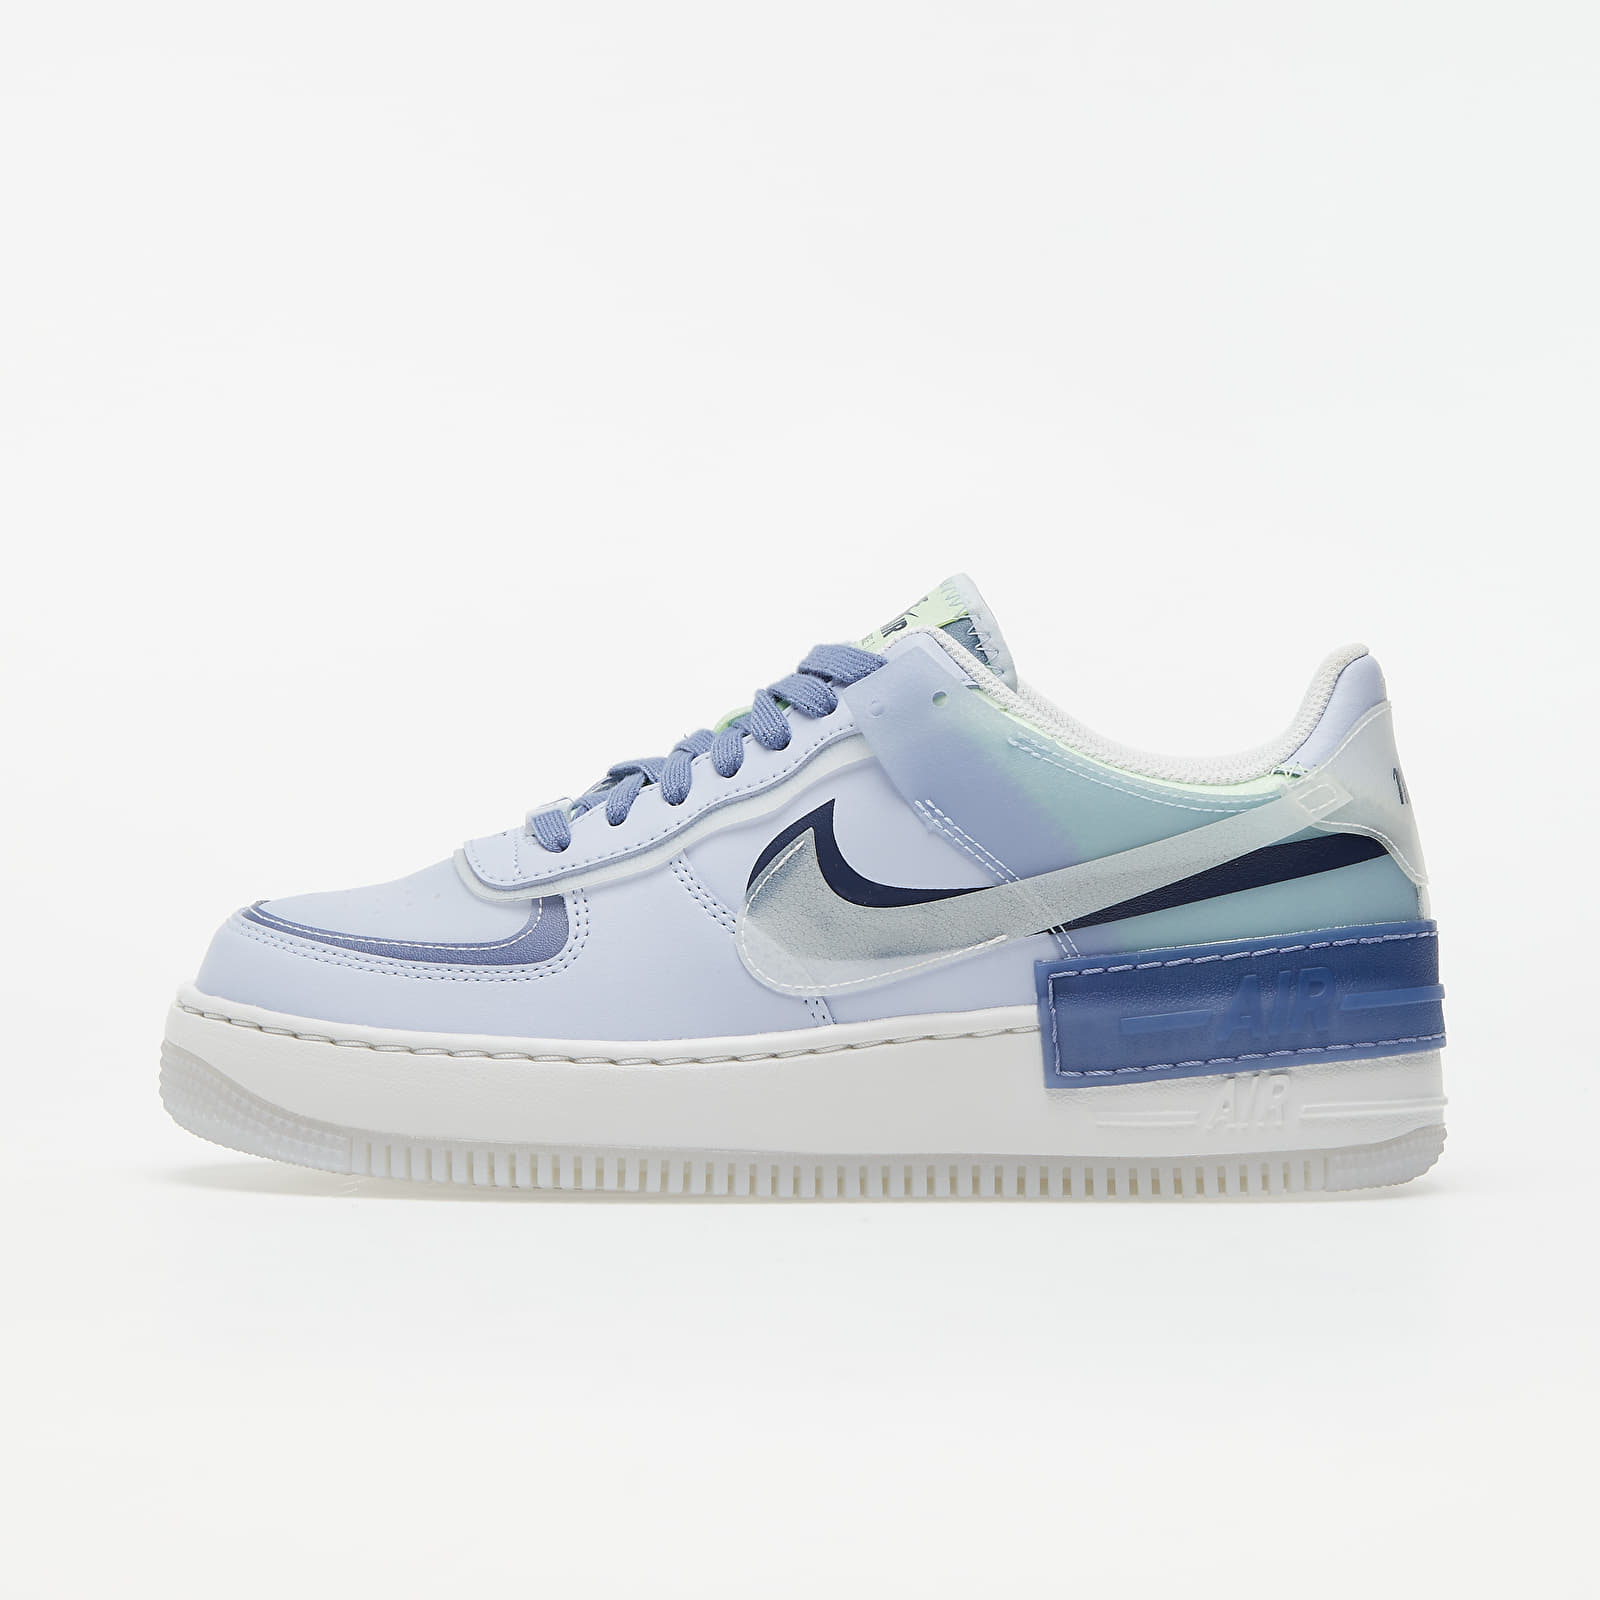 Women S Shoes Nike W Air Force 1 Shadow Se Ghost Summit White World Indigo La très connue nike air force 1. nike w air force 1 shadow se ghost summit white world indigo footshop